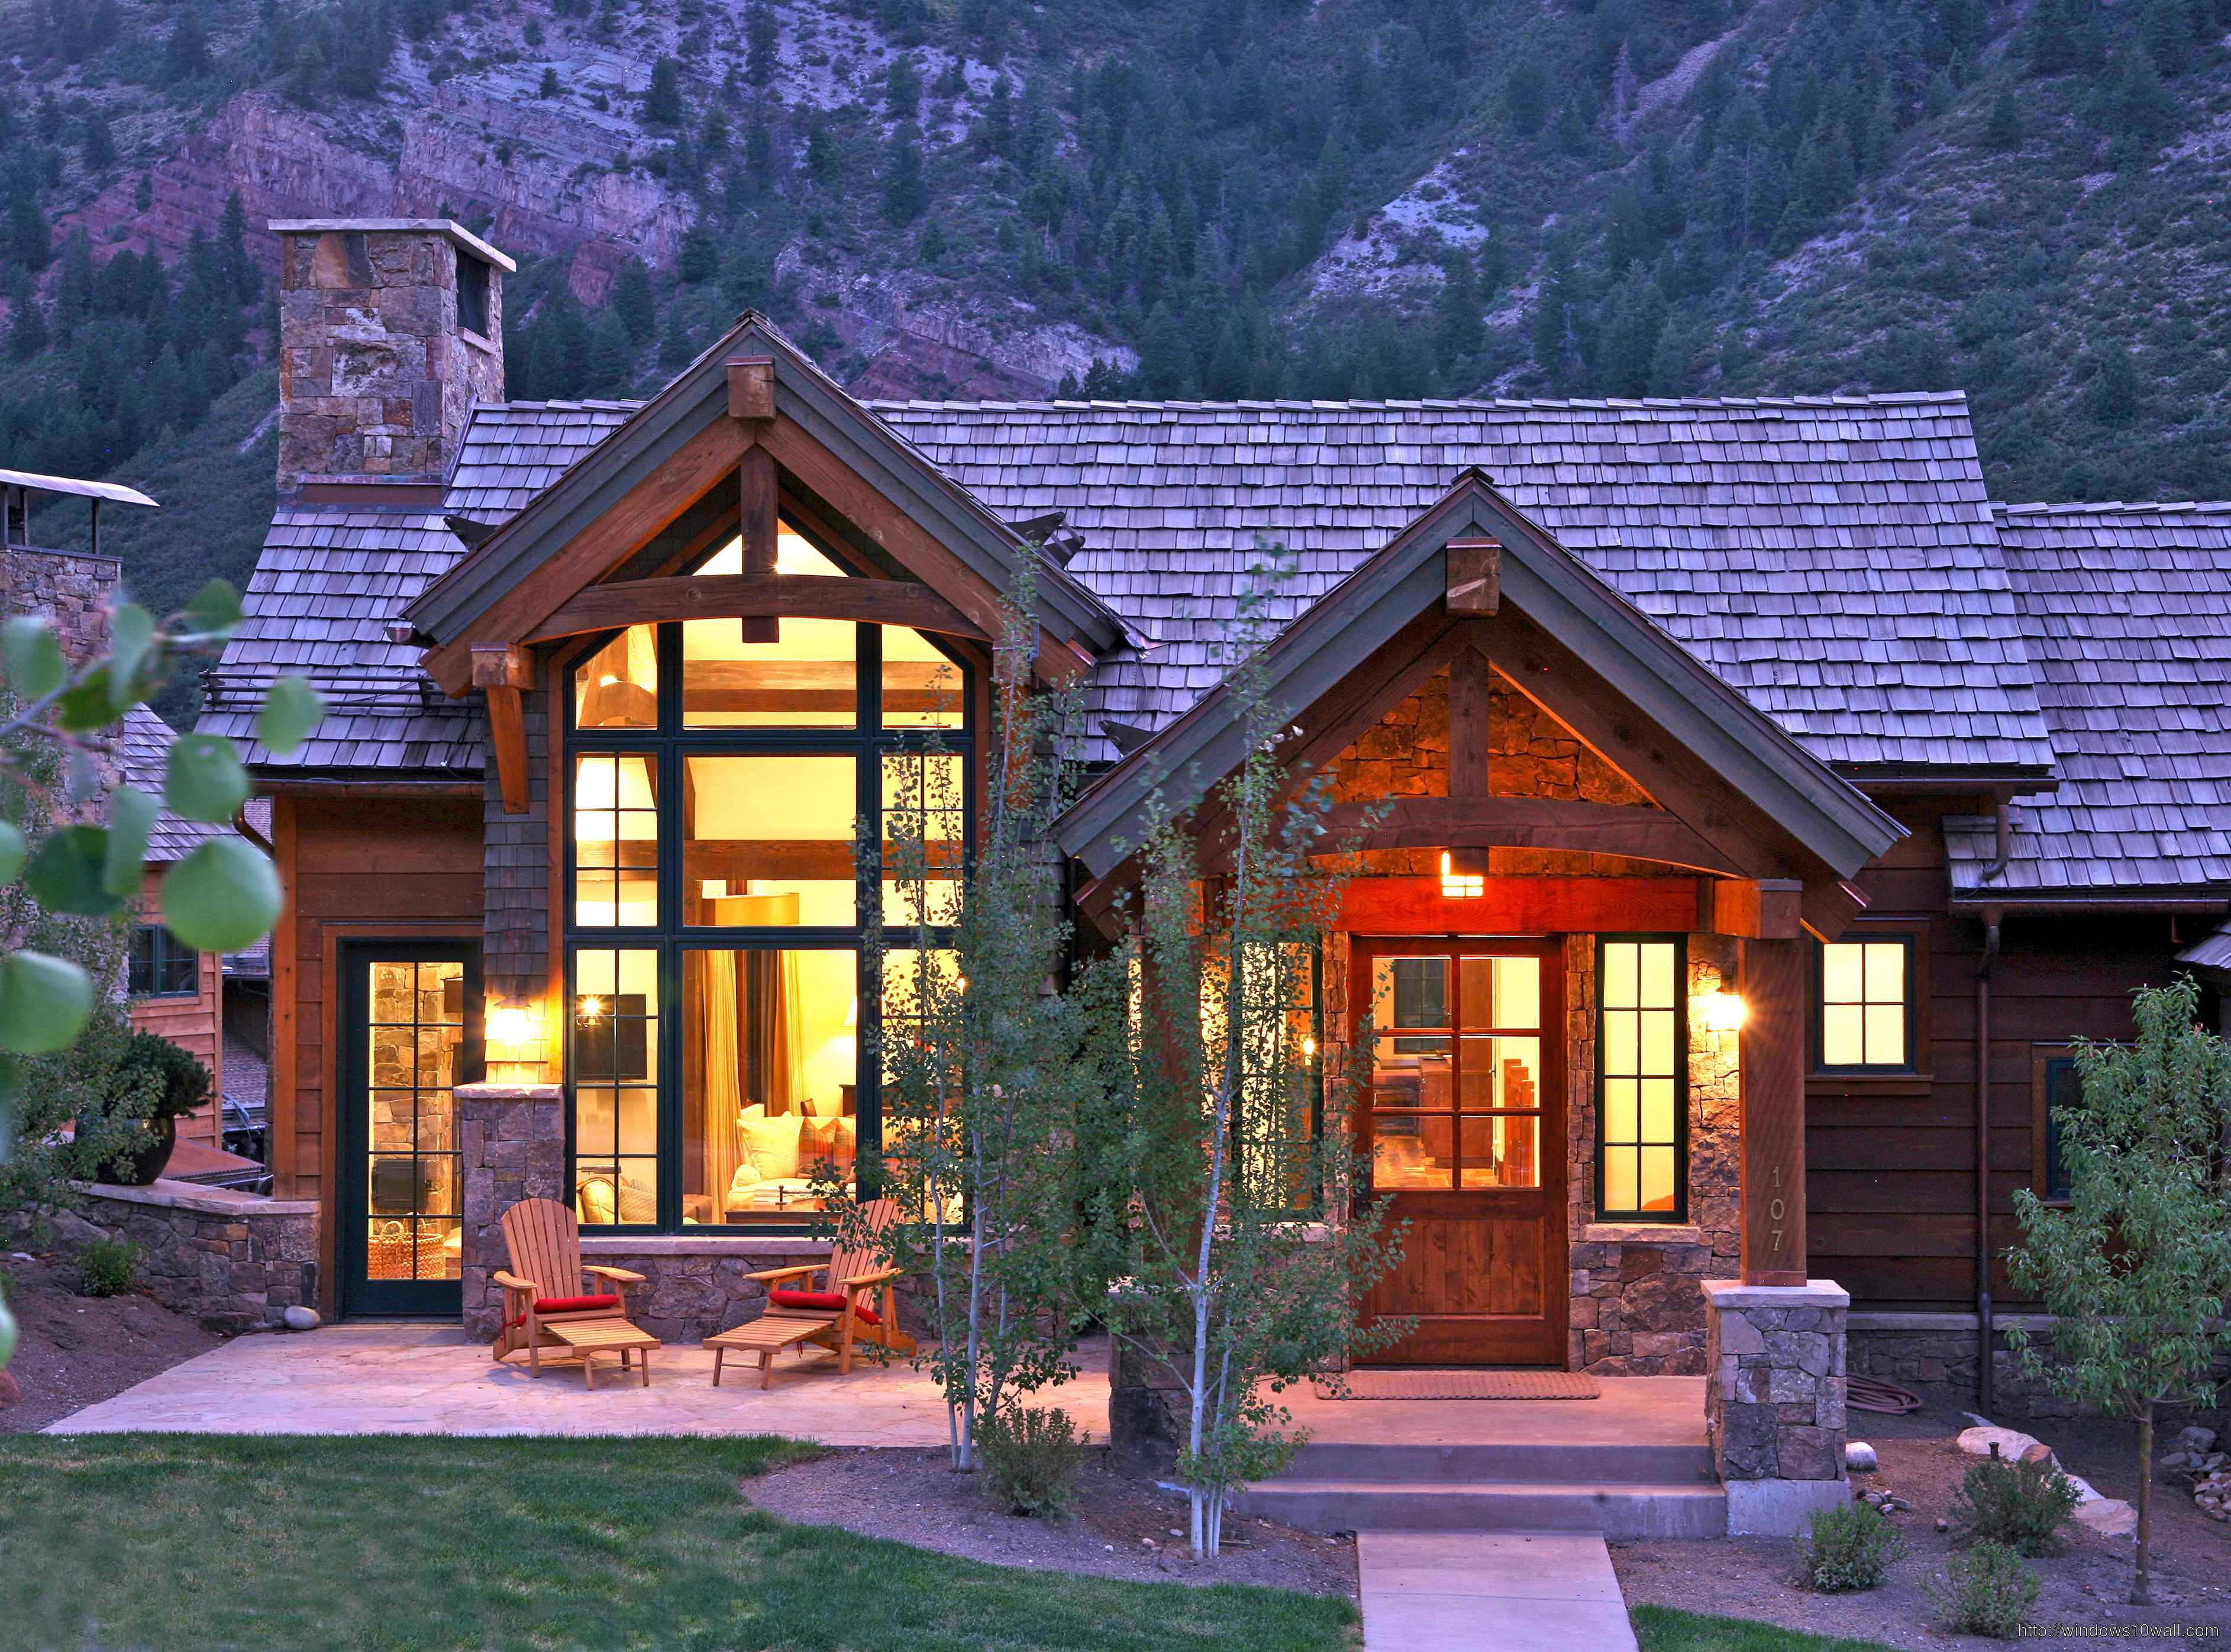 aspen-colorado-homes-travel-wallpaper